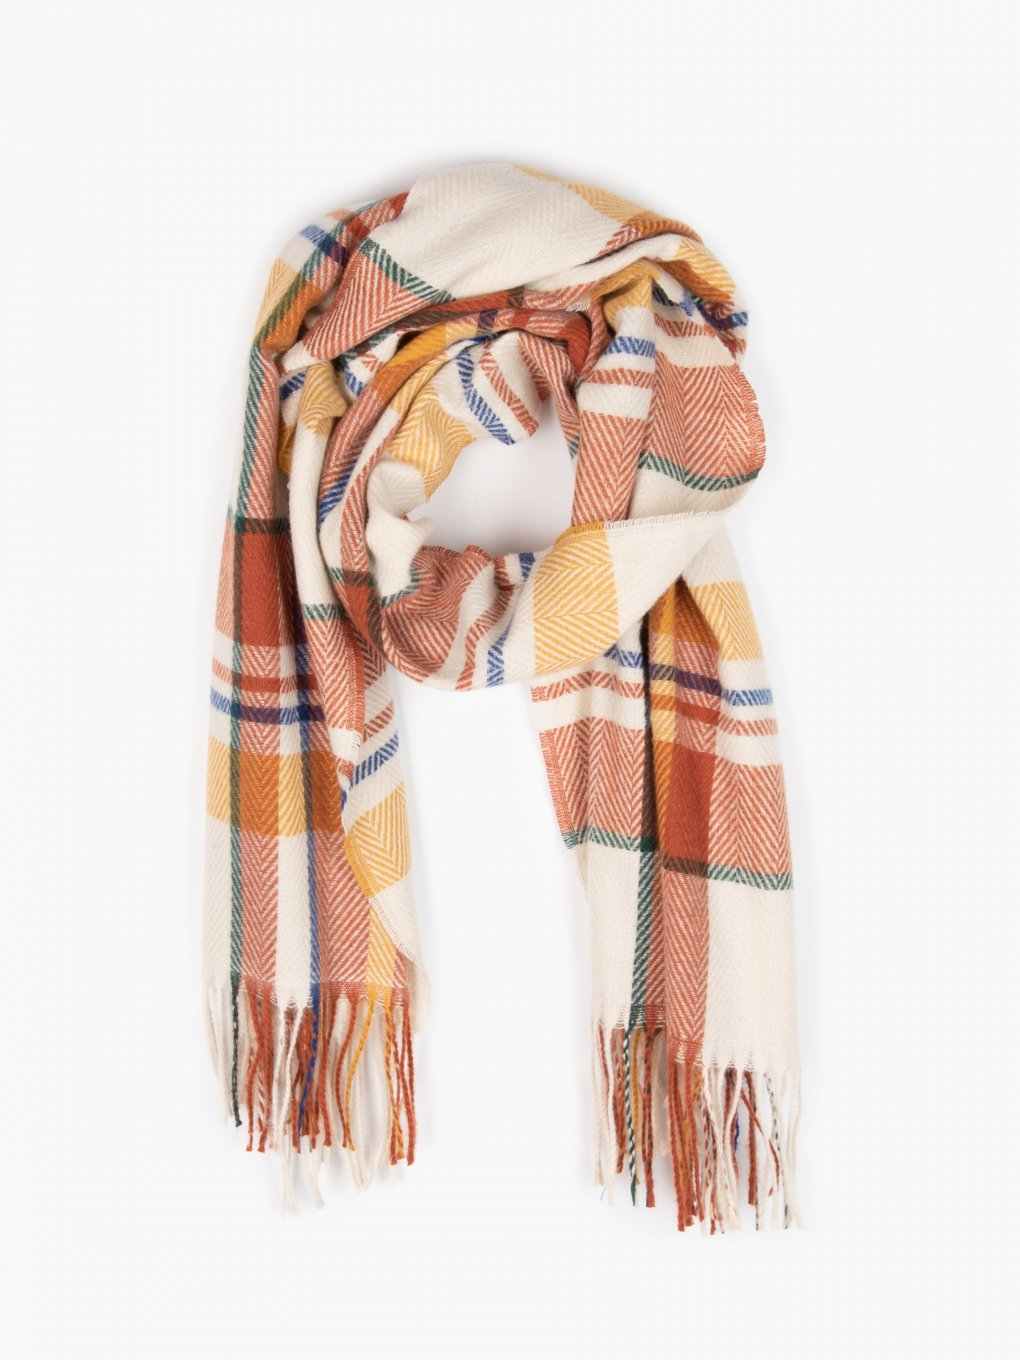 Colourfull plaid scarf with tassels